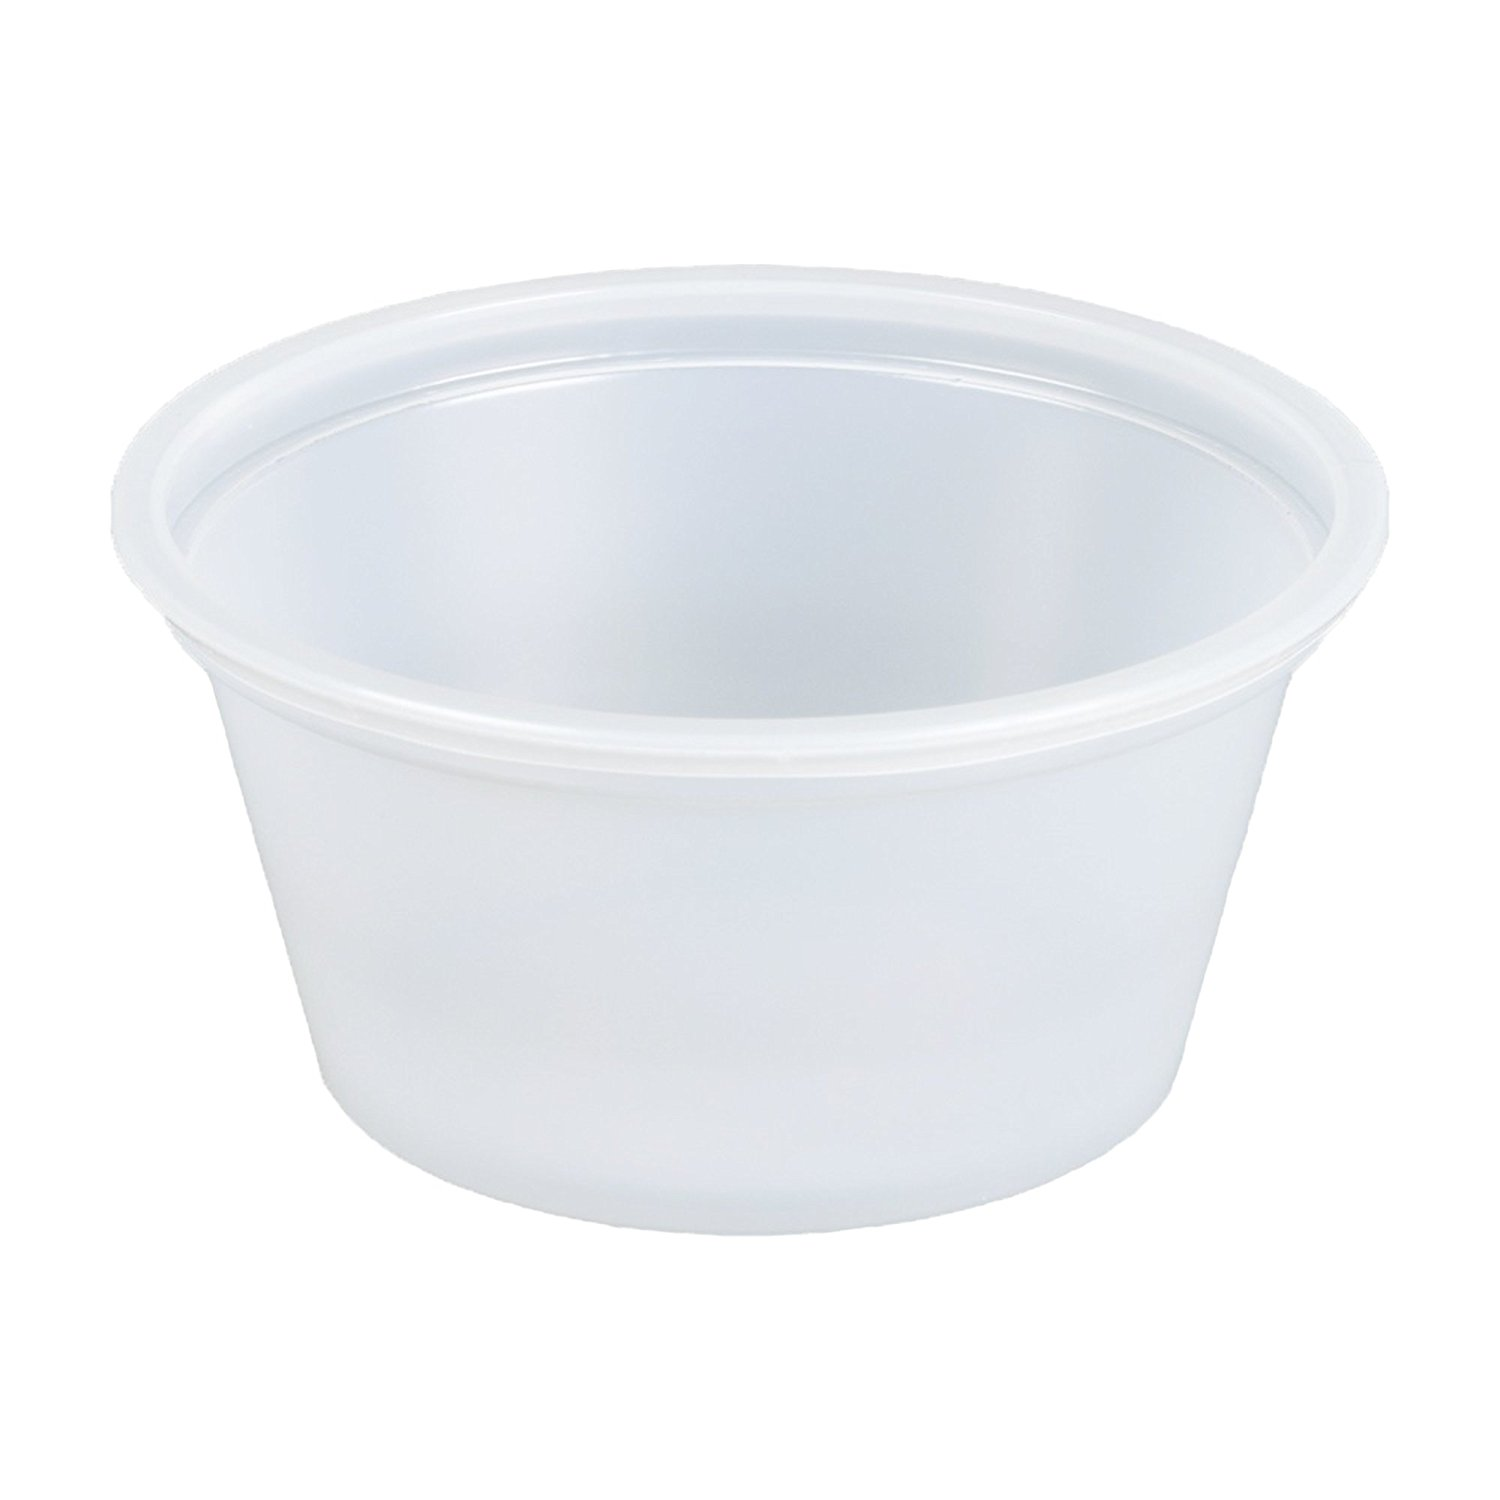 safepro 4 oz portion cups with lids, 150 cups with lids (souffle